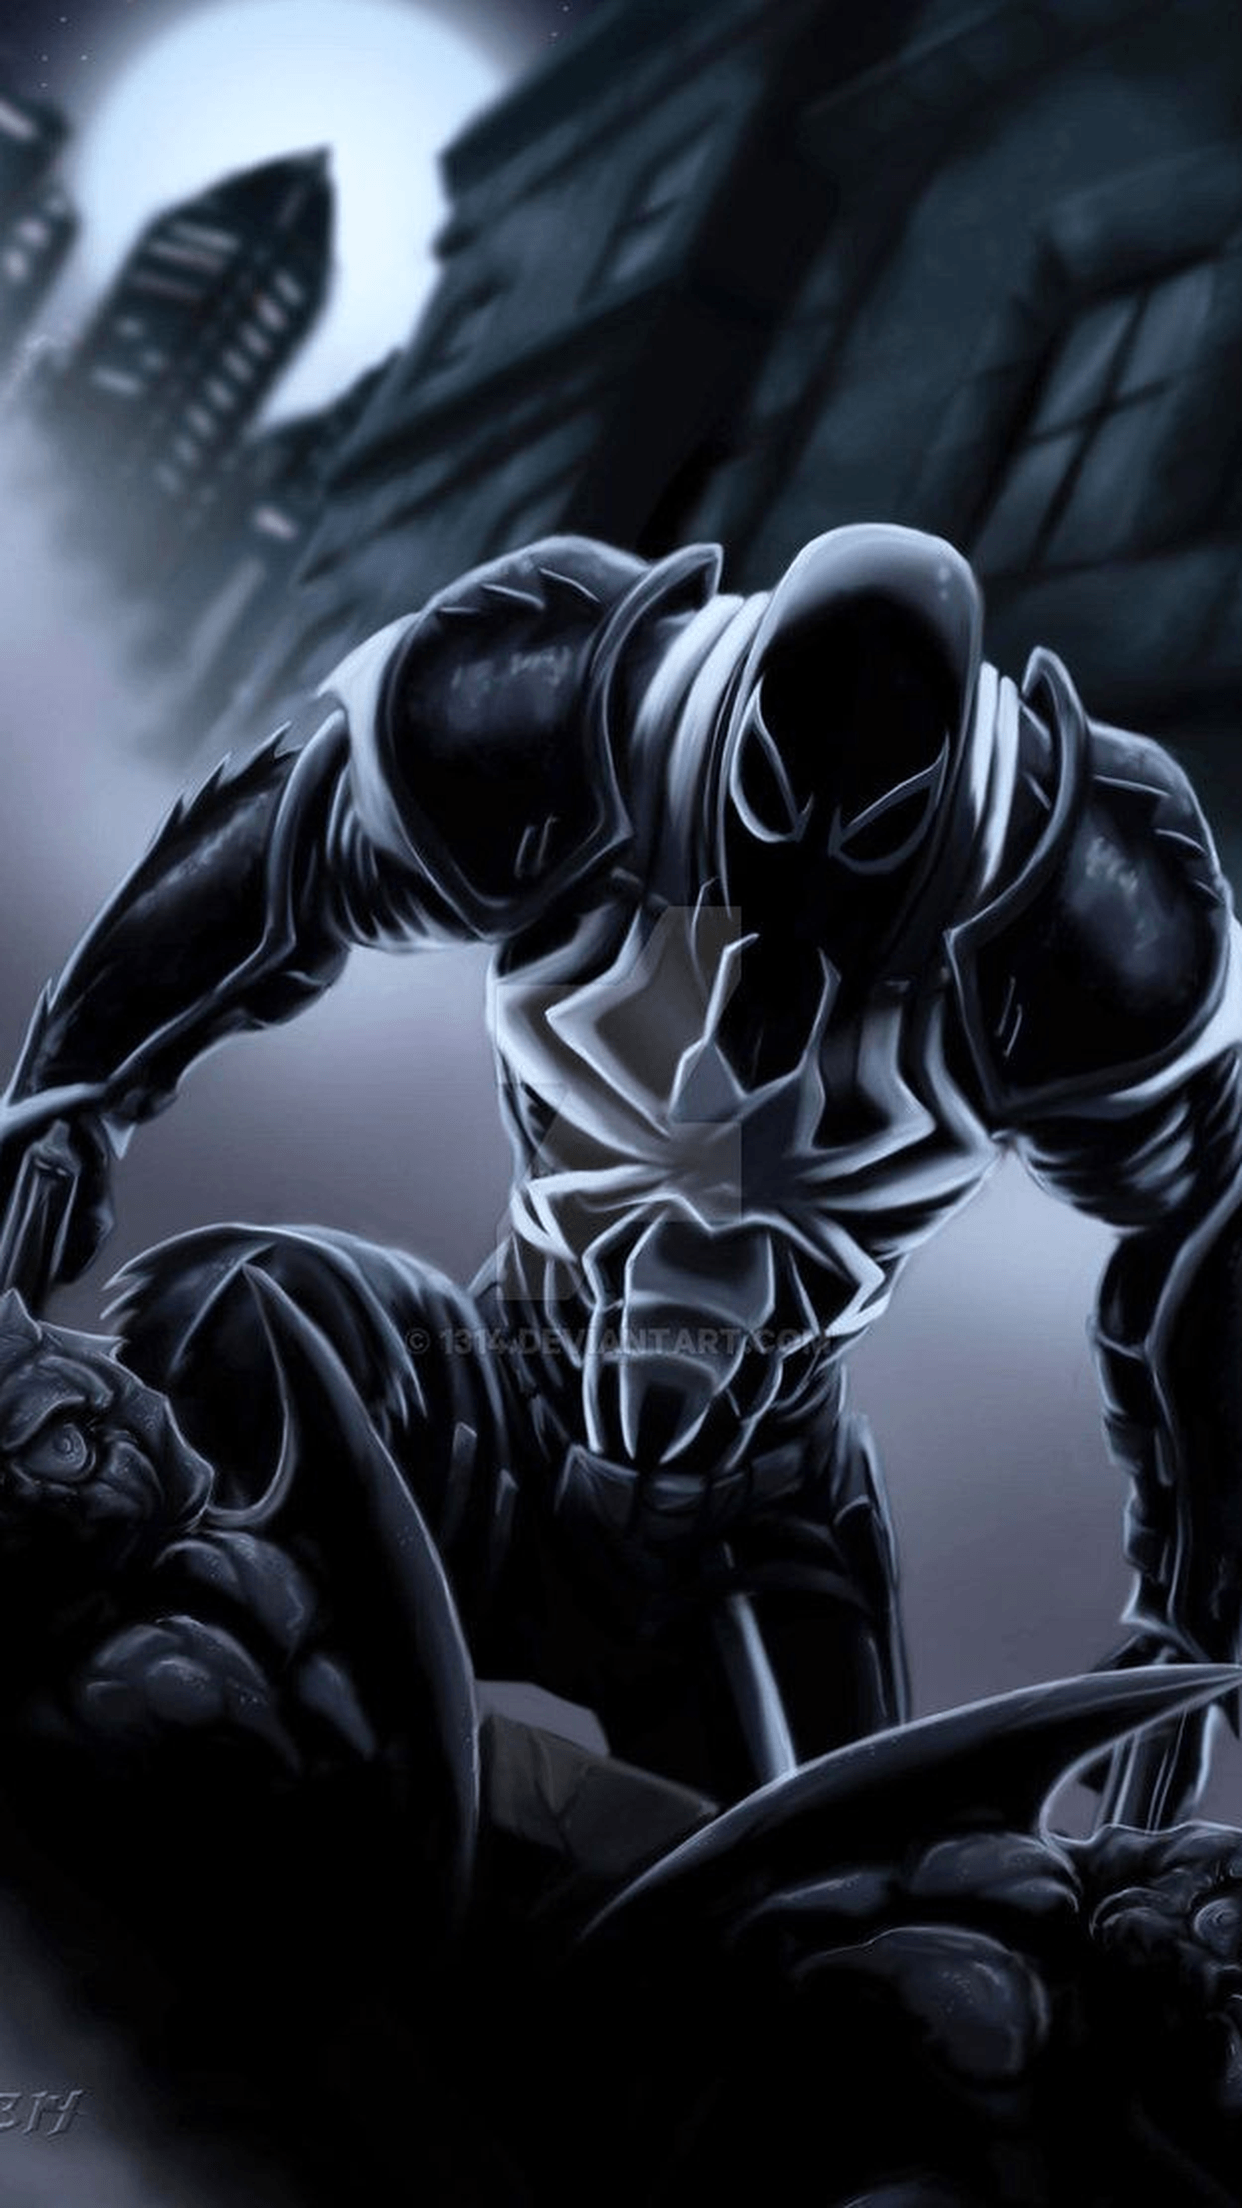 "1024x768 Spiderman Vs Venom Wallpaper : Just Free Wallpaperz"">"